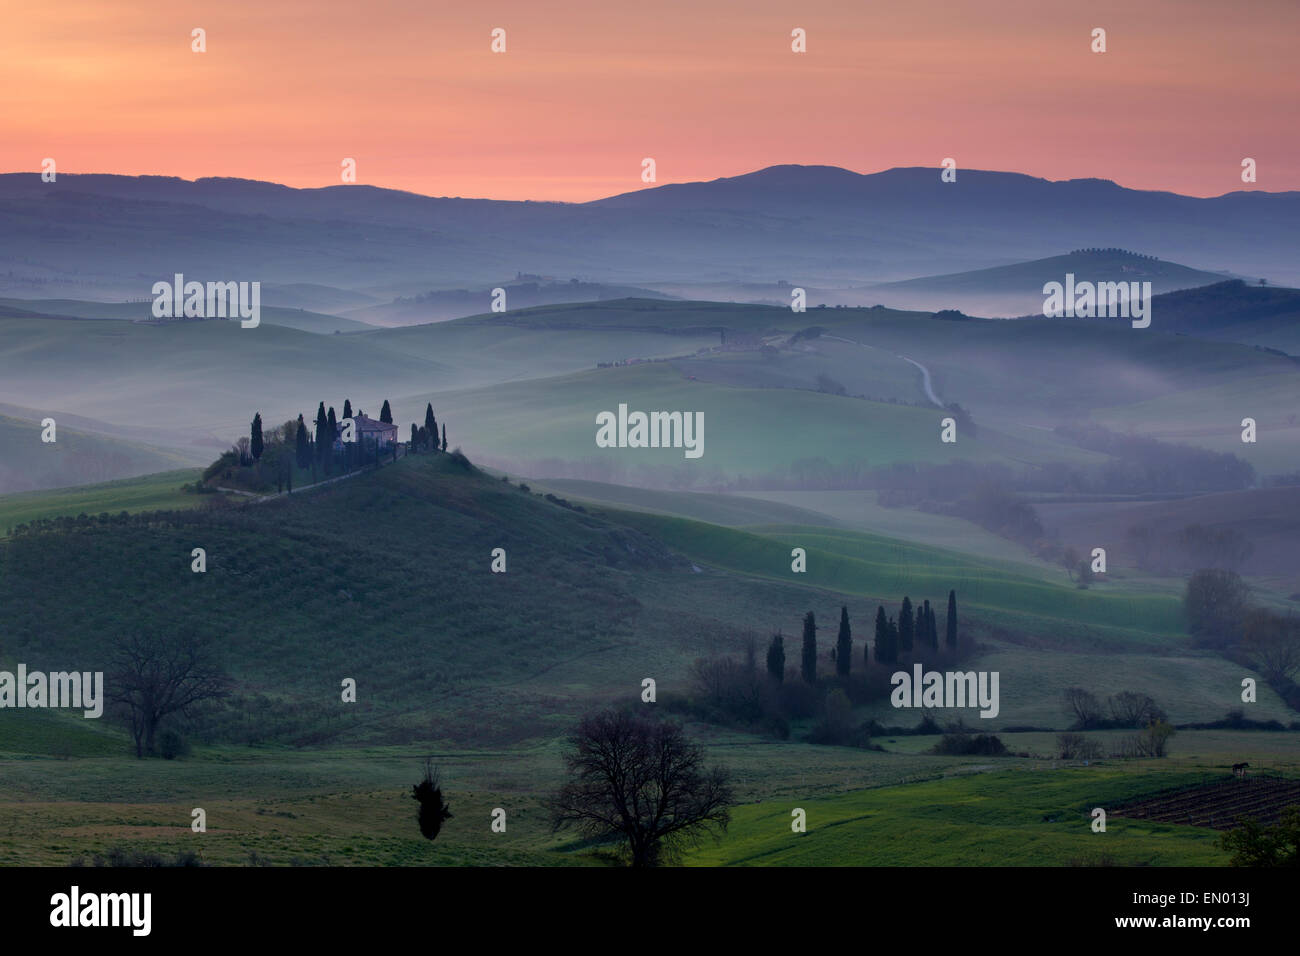 Podere Belvedere and Tuscan countryside at dawn, San Quirico d'Orcia, Tuscany, Italy - Stock Image